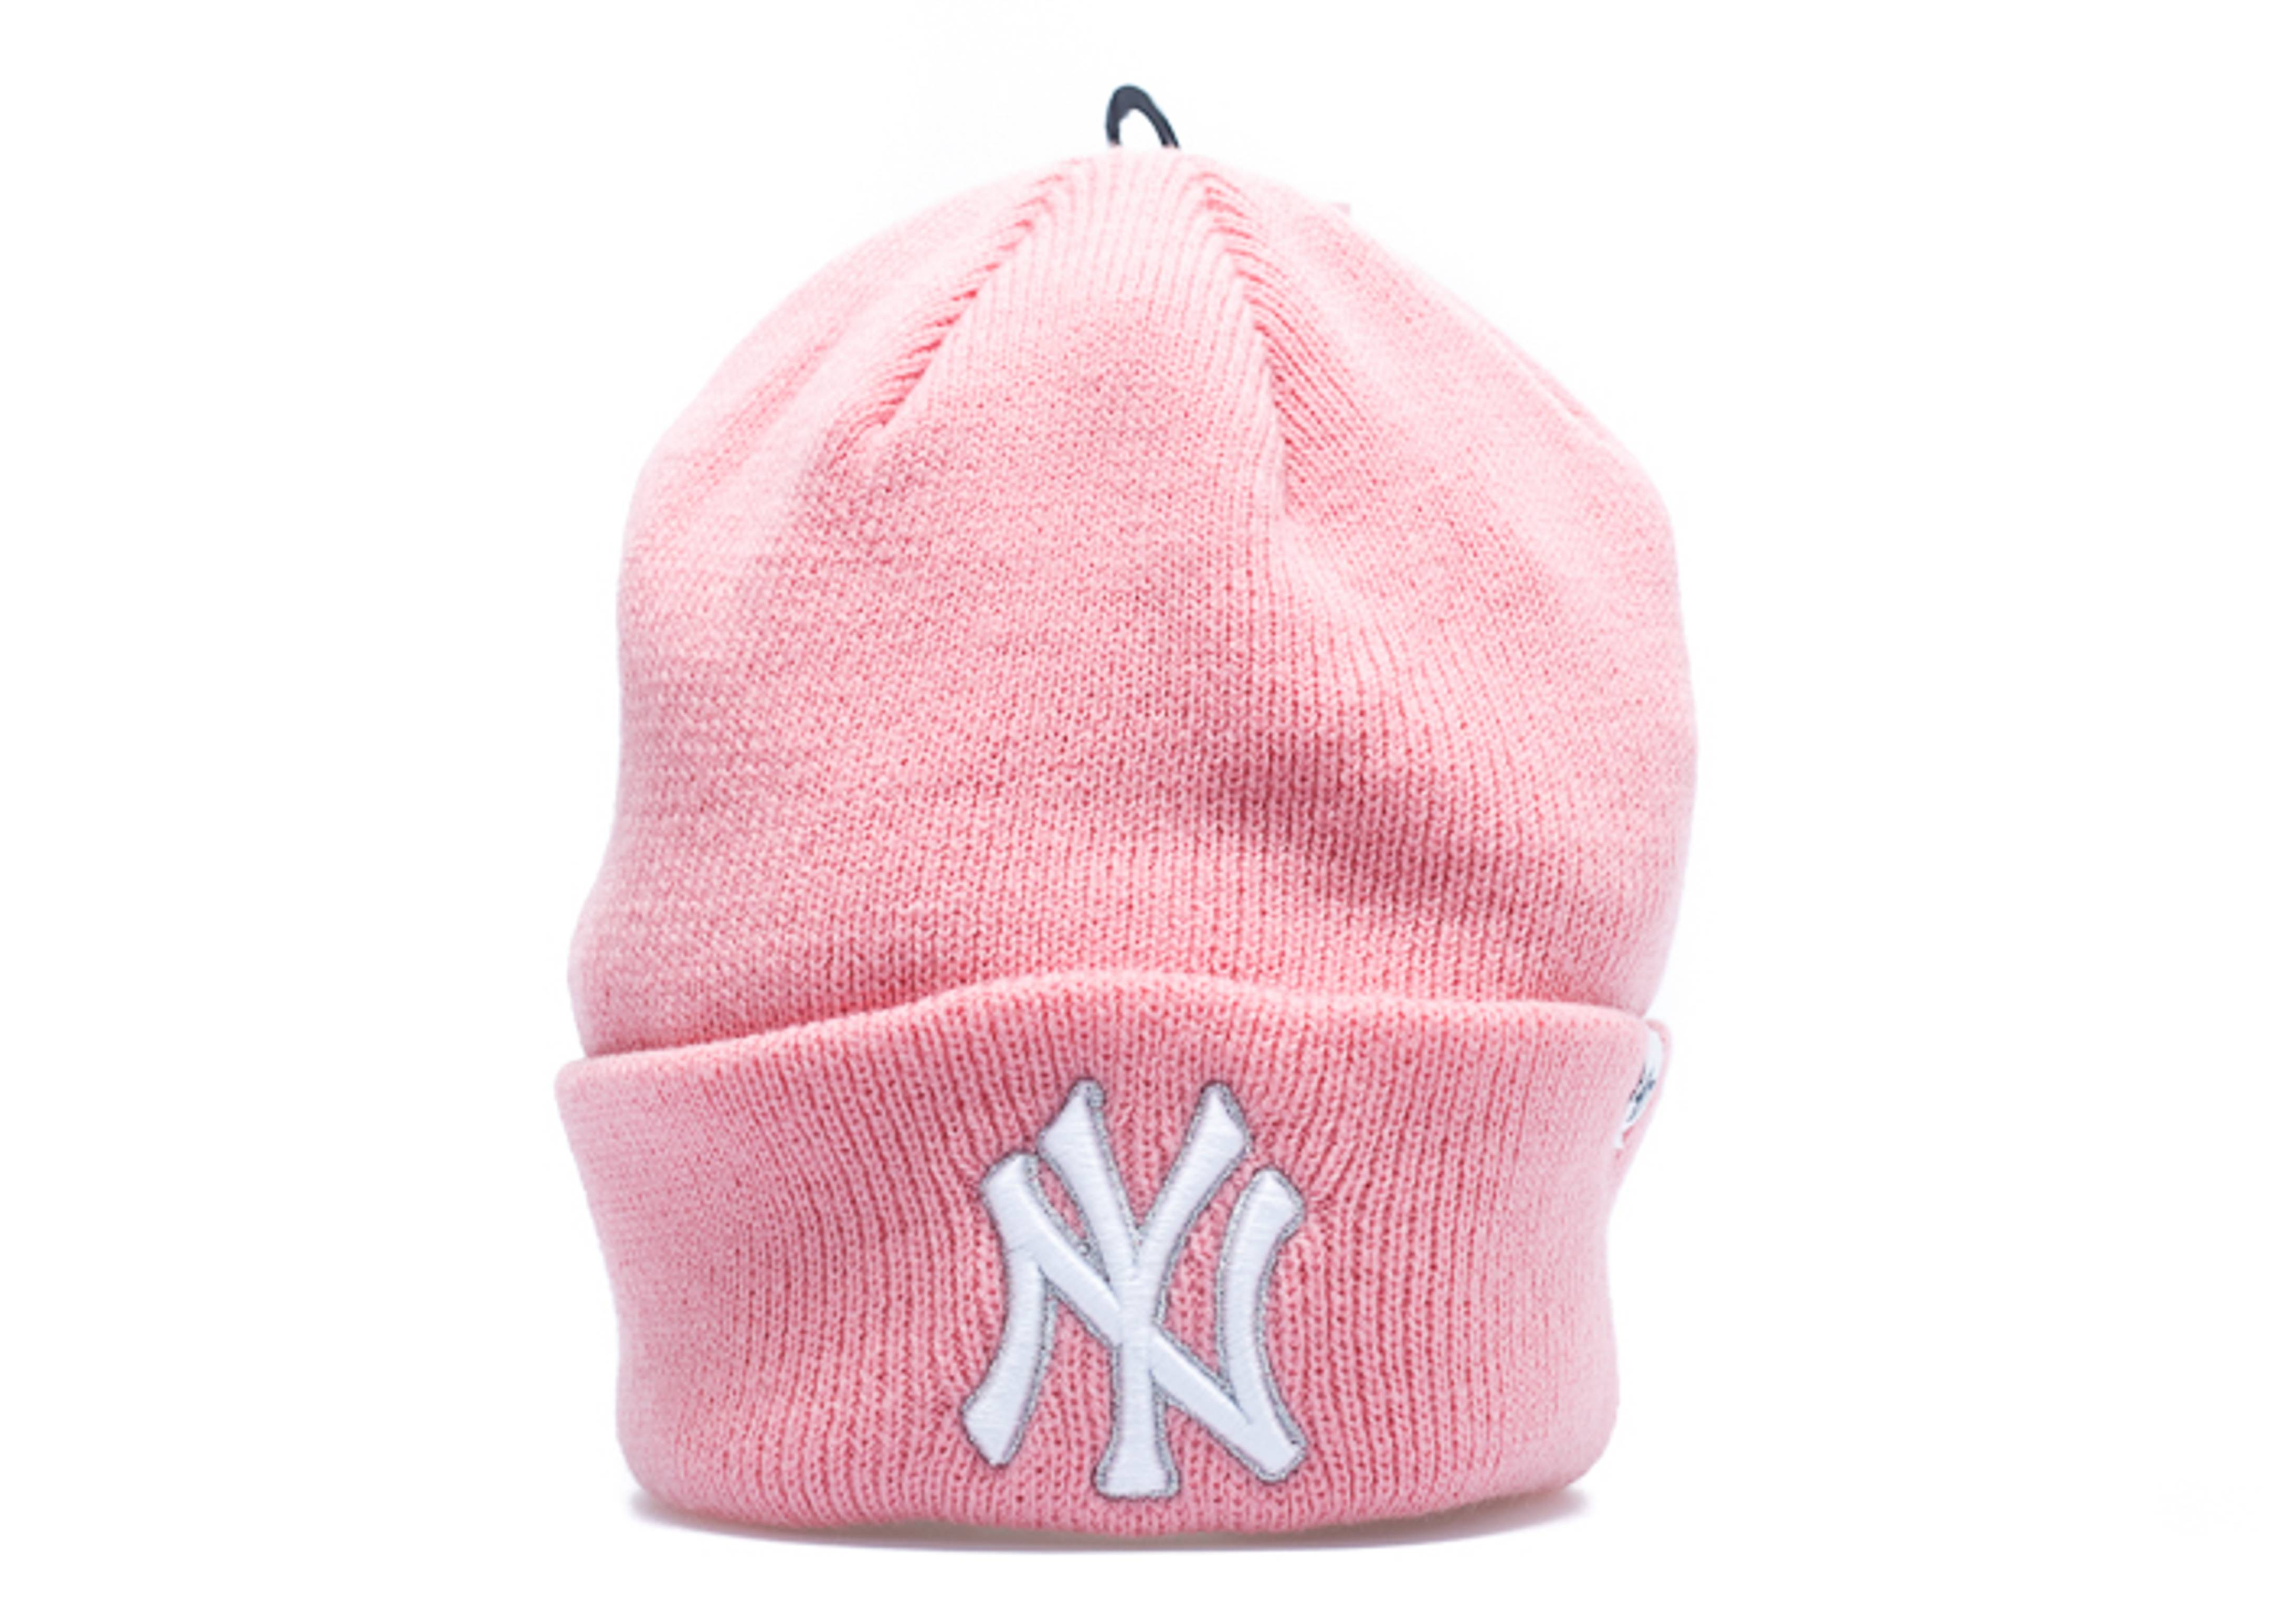 6efa162b4c8 New York Yankees Cuffed Knit Beanie - 47 Brand - brkn17acers - pink ...